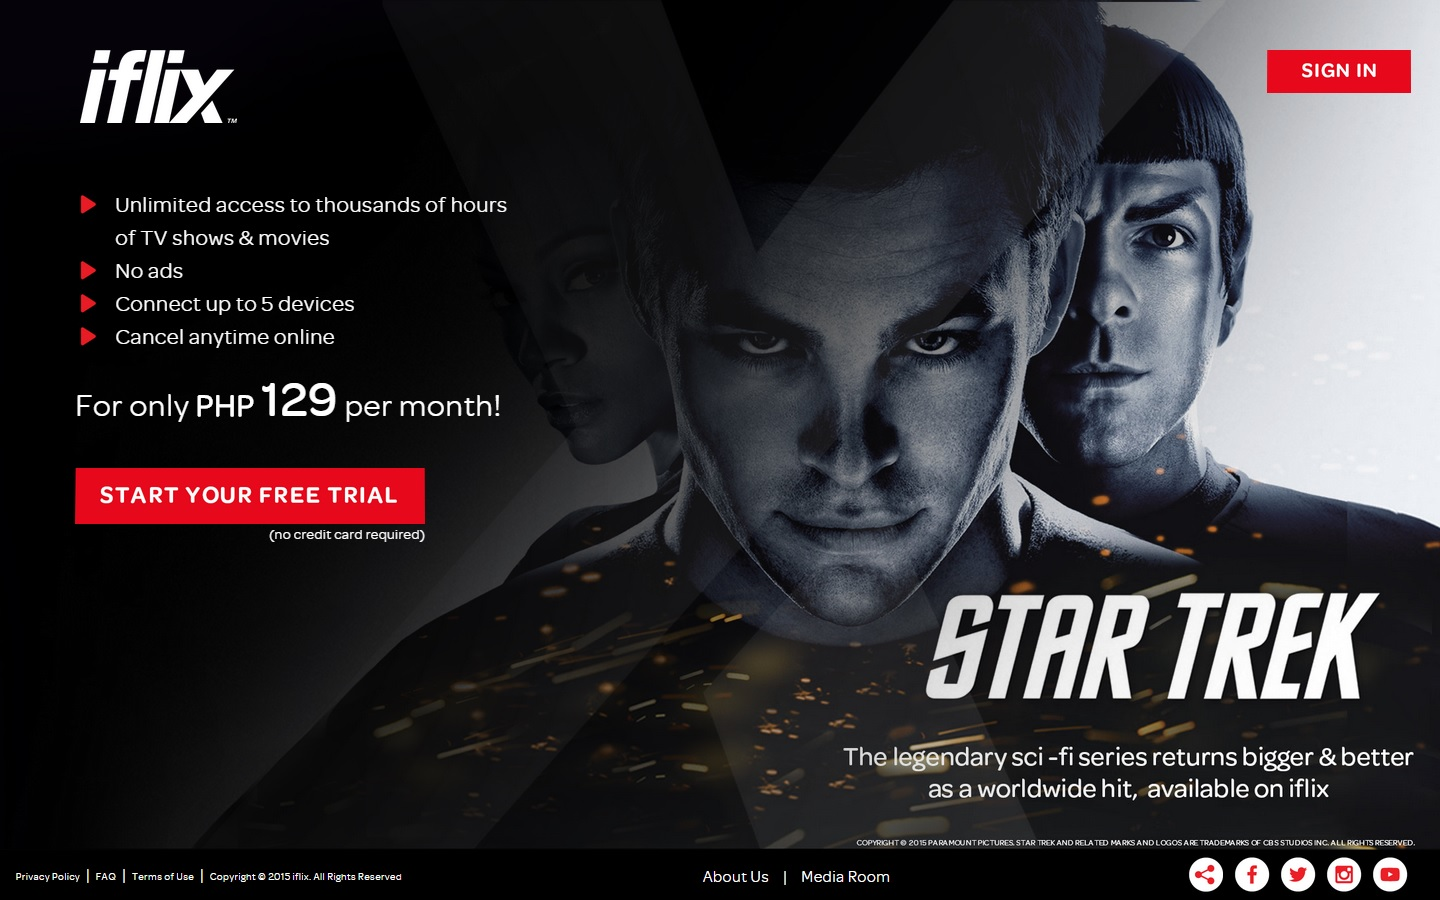 iflix now available to PLDT HOME and Smart subscribers @ P99